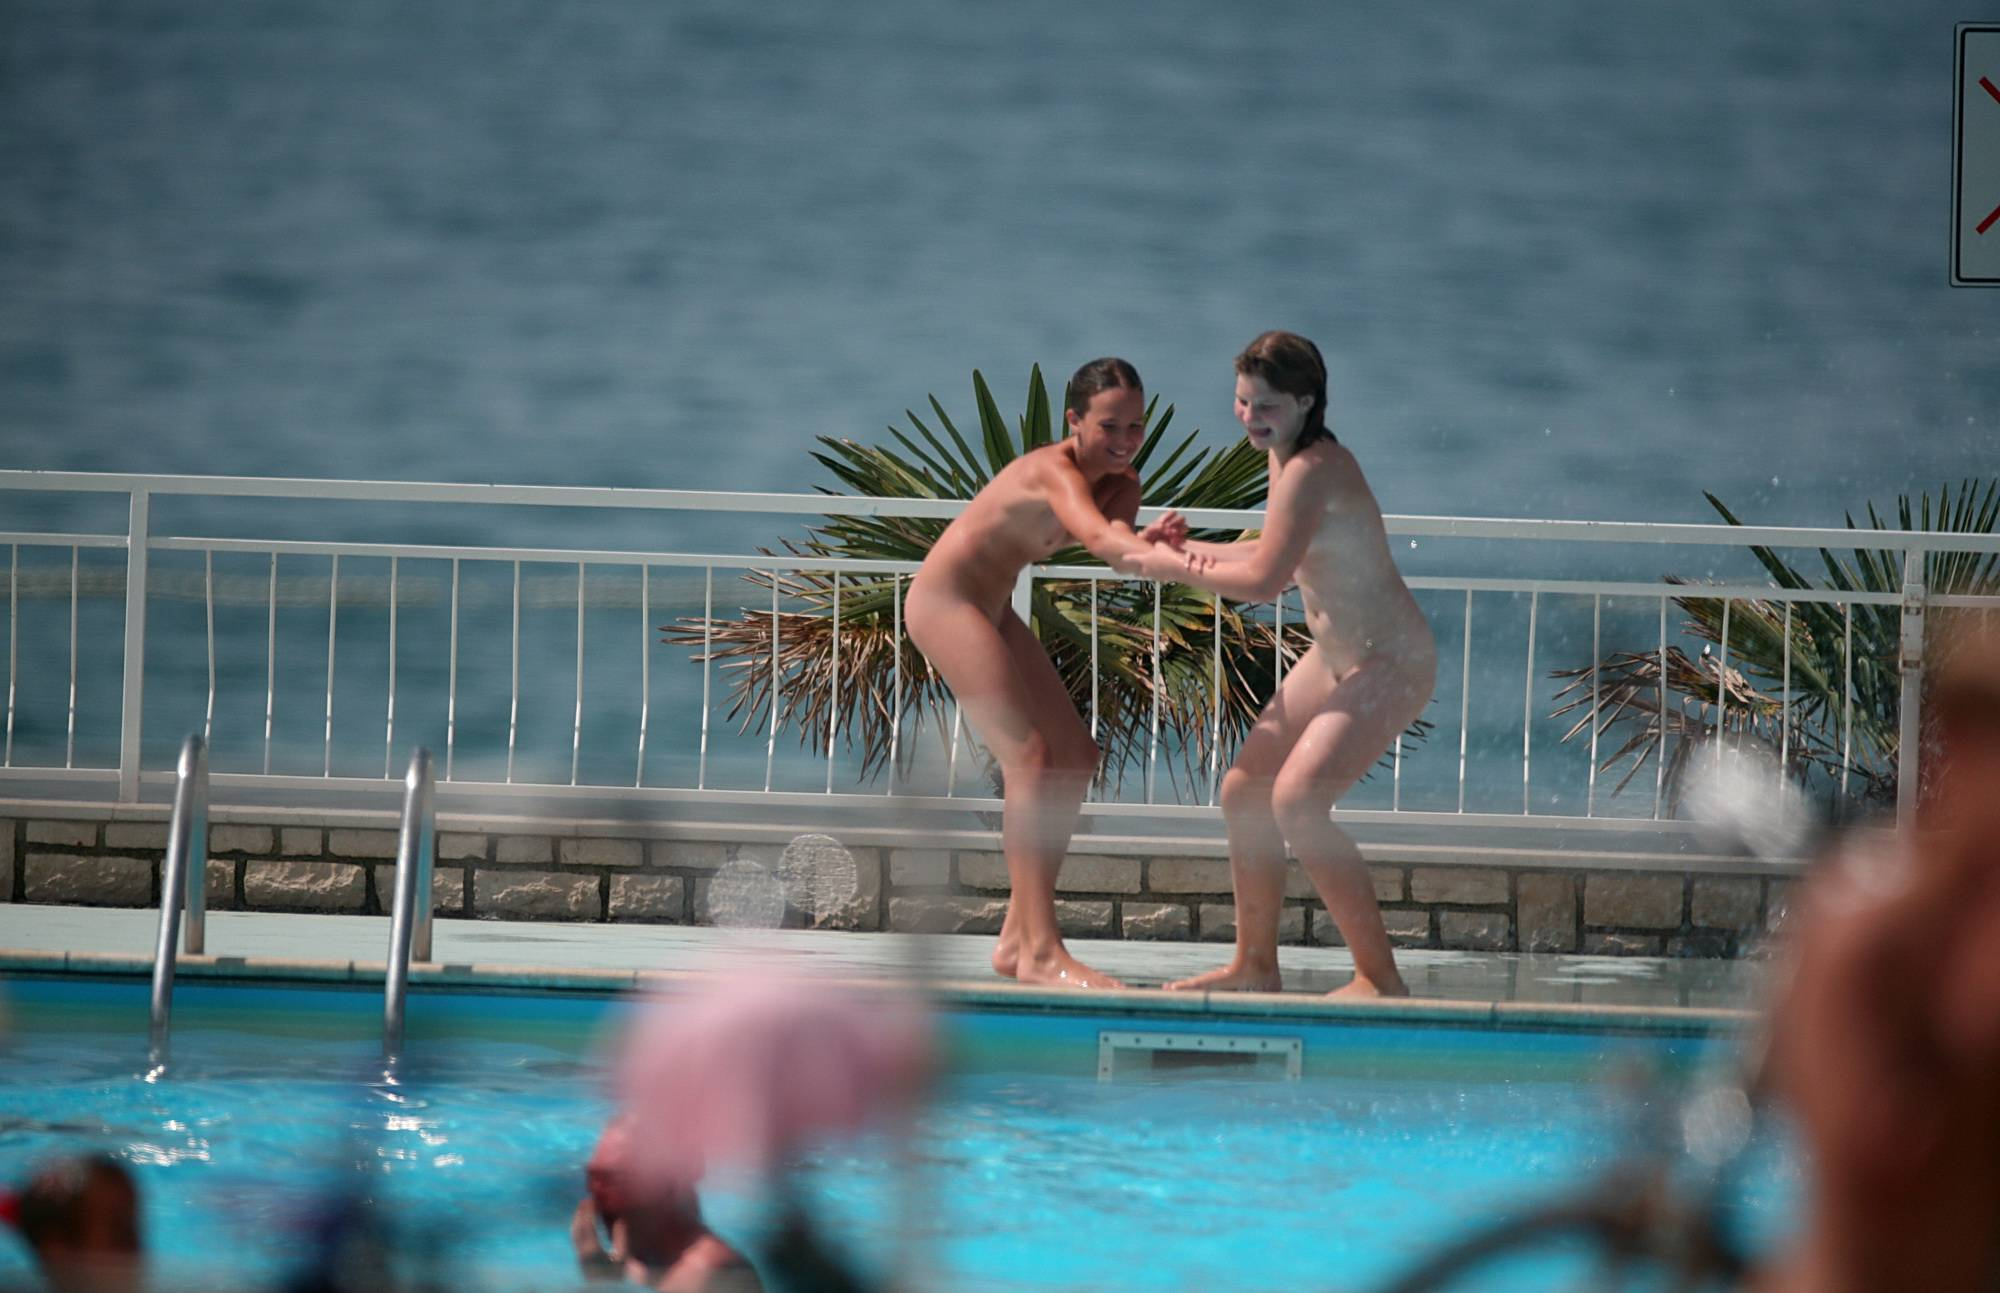 Nudist Pictures Push a Girl Into the Pool - 2